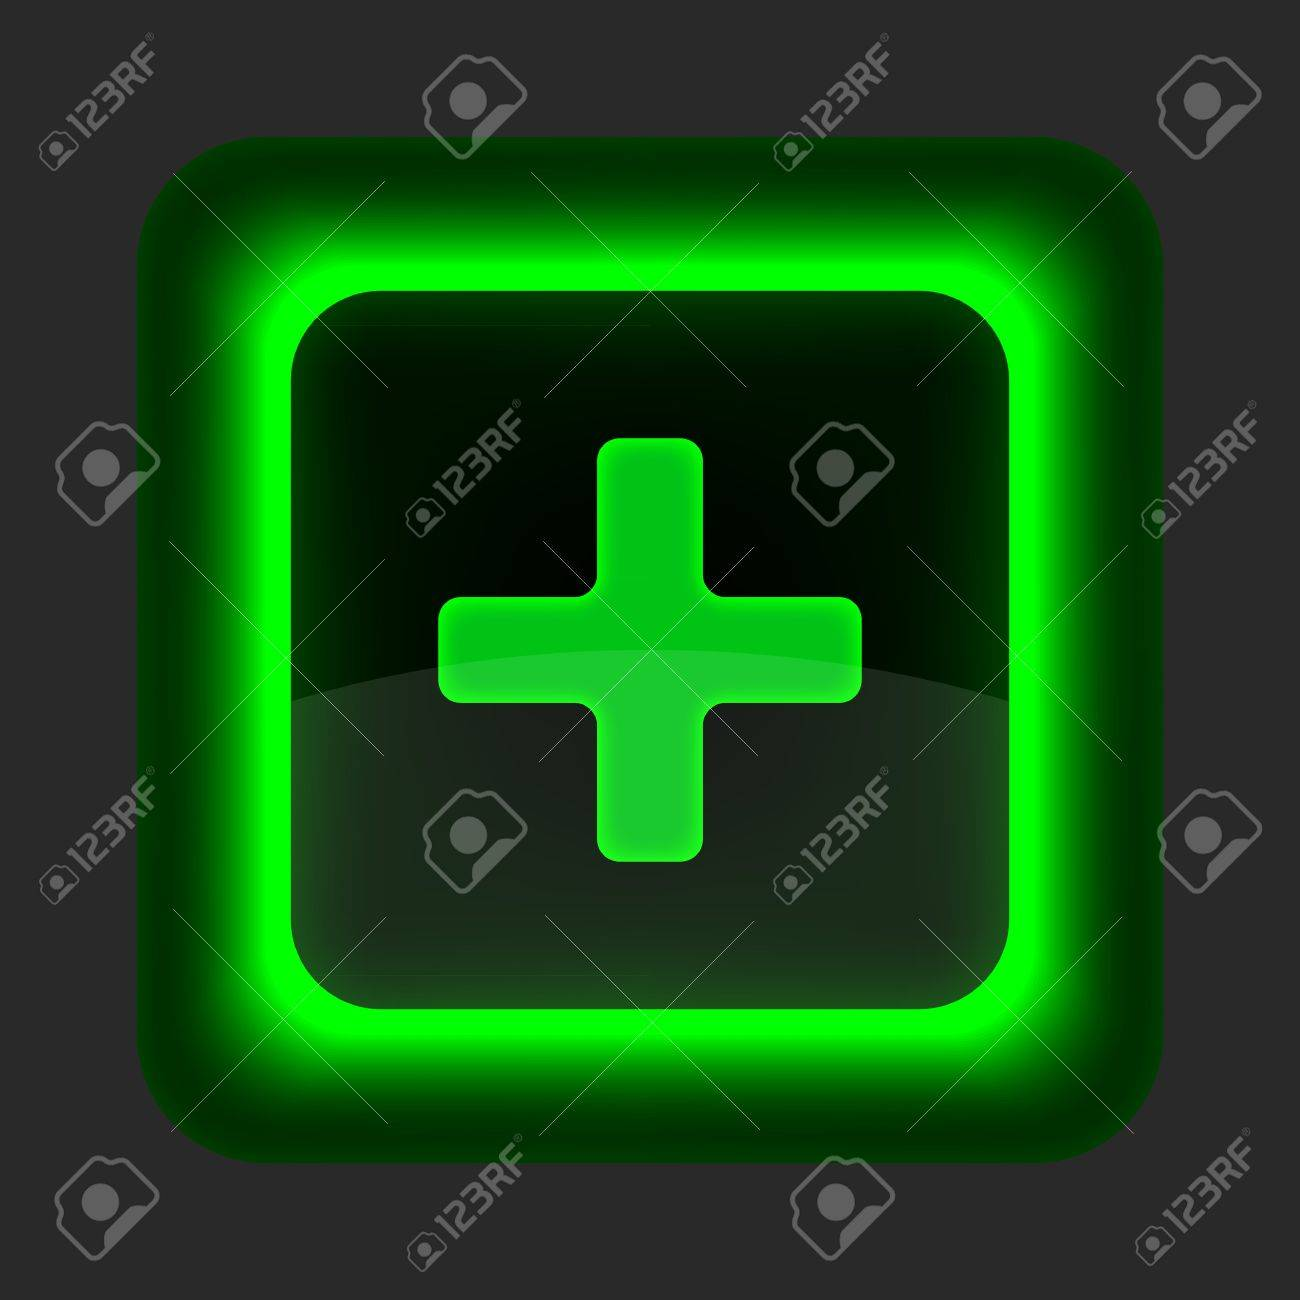 Green glossy web button with addition sign. Rounded square shape icon on gray background Stock Vector - 14698753